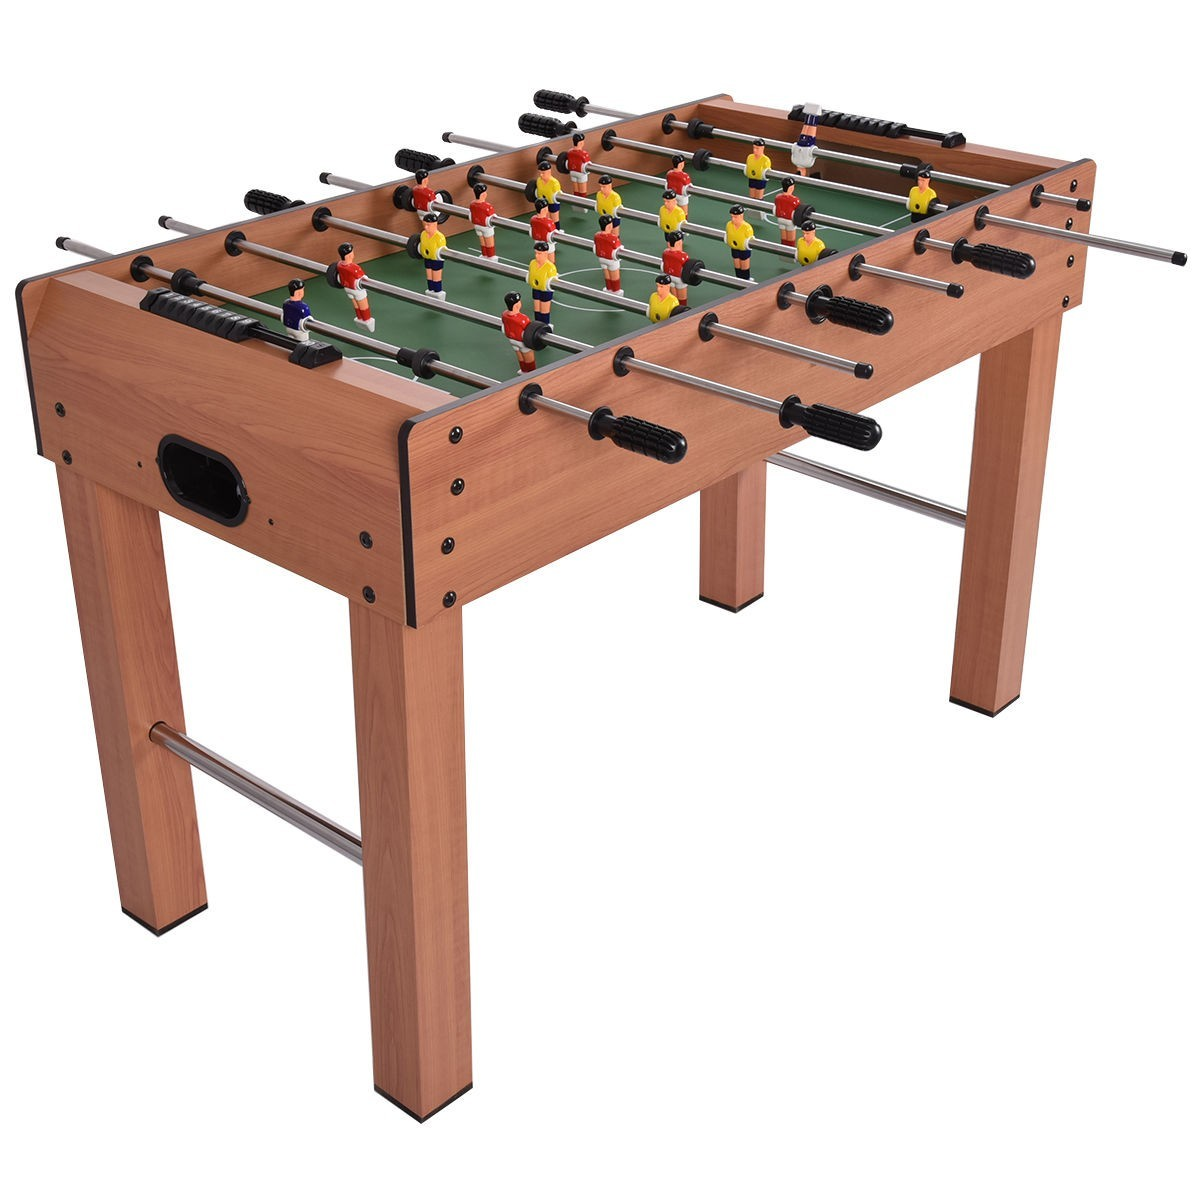 "48"" Foosball Table Competition Game Soccer Arcade Sized Football Sports Indoor by Apontus"